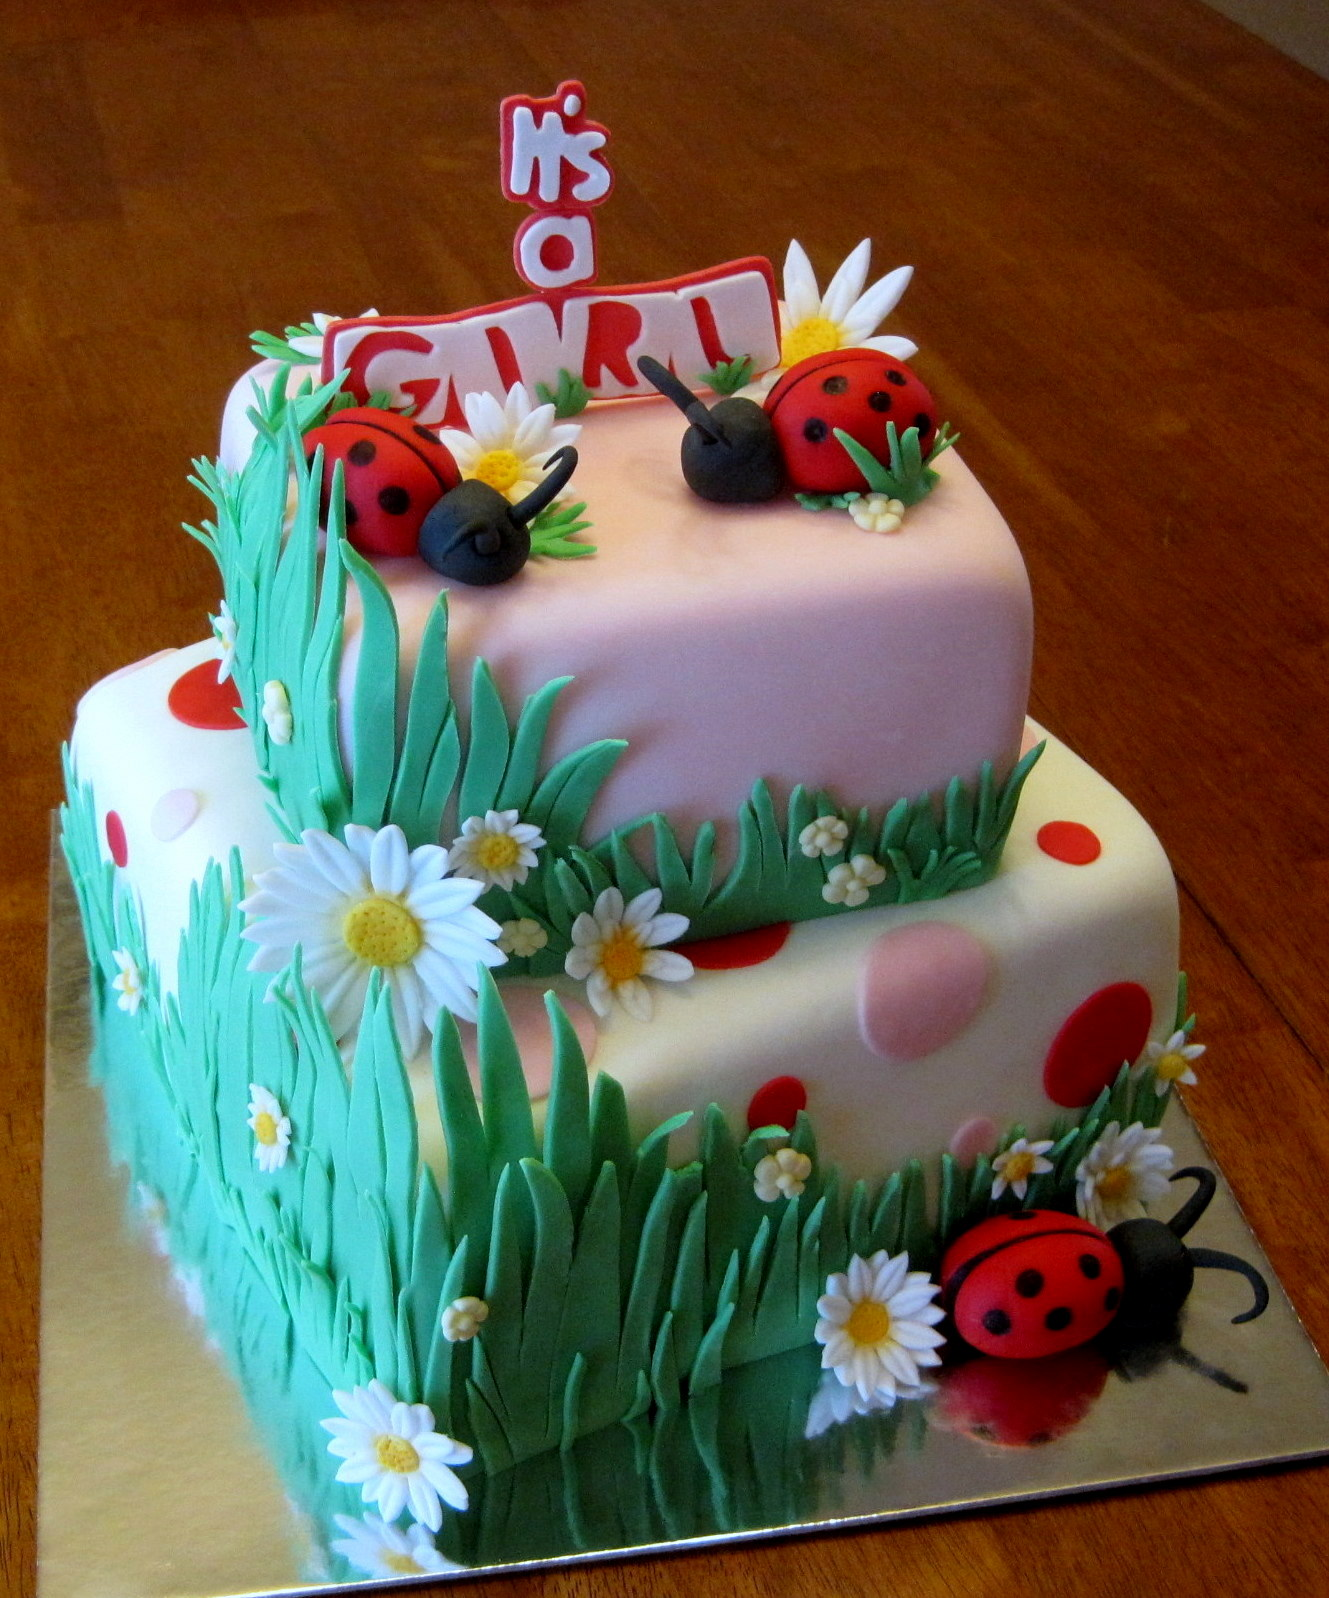 Cake Decorating Making Grass : Custom Cakes By Stef: Ladybugs in Grass Cake